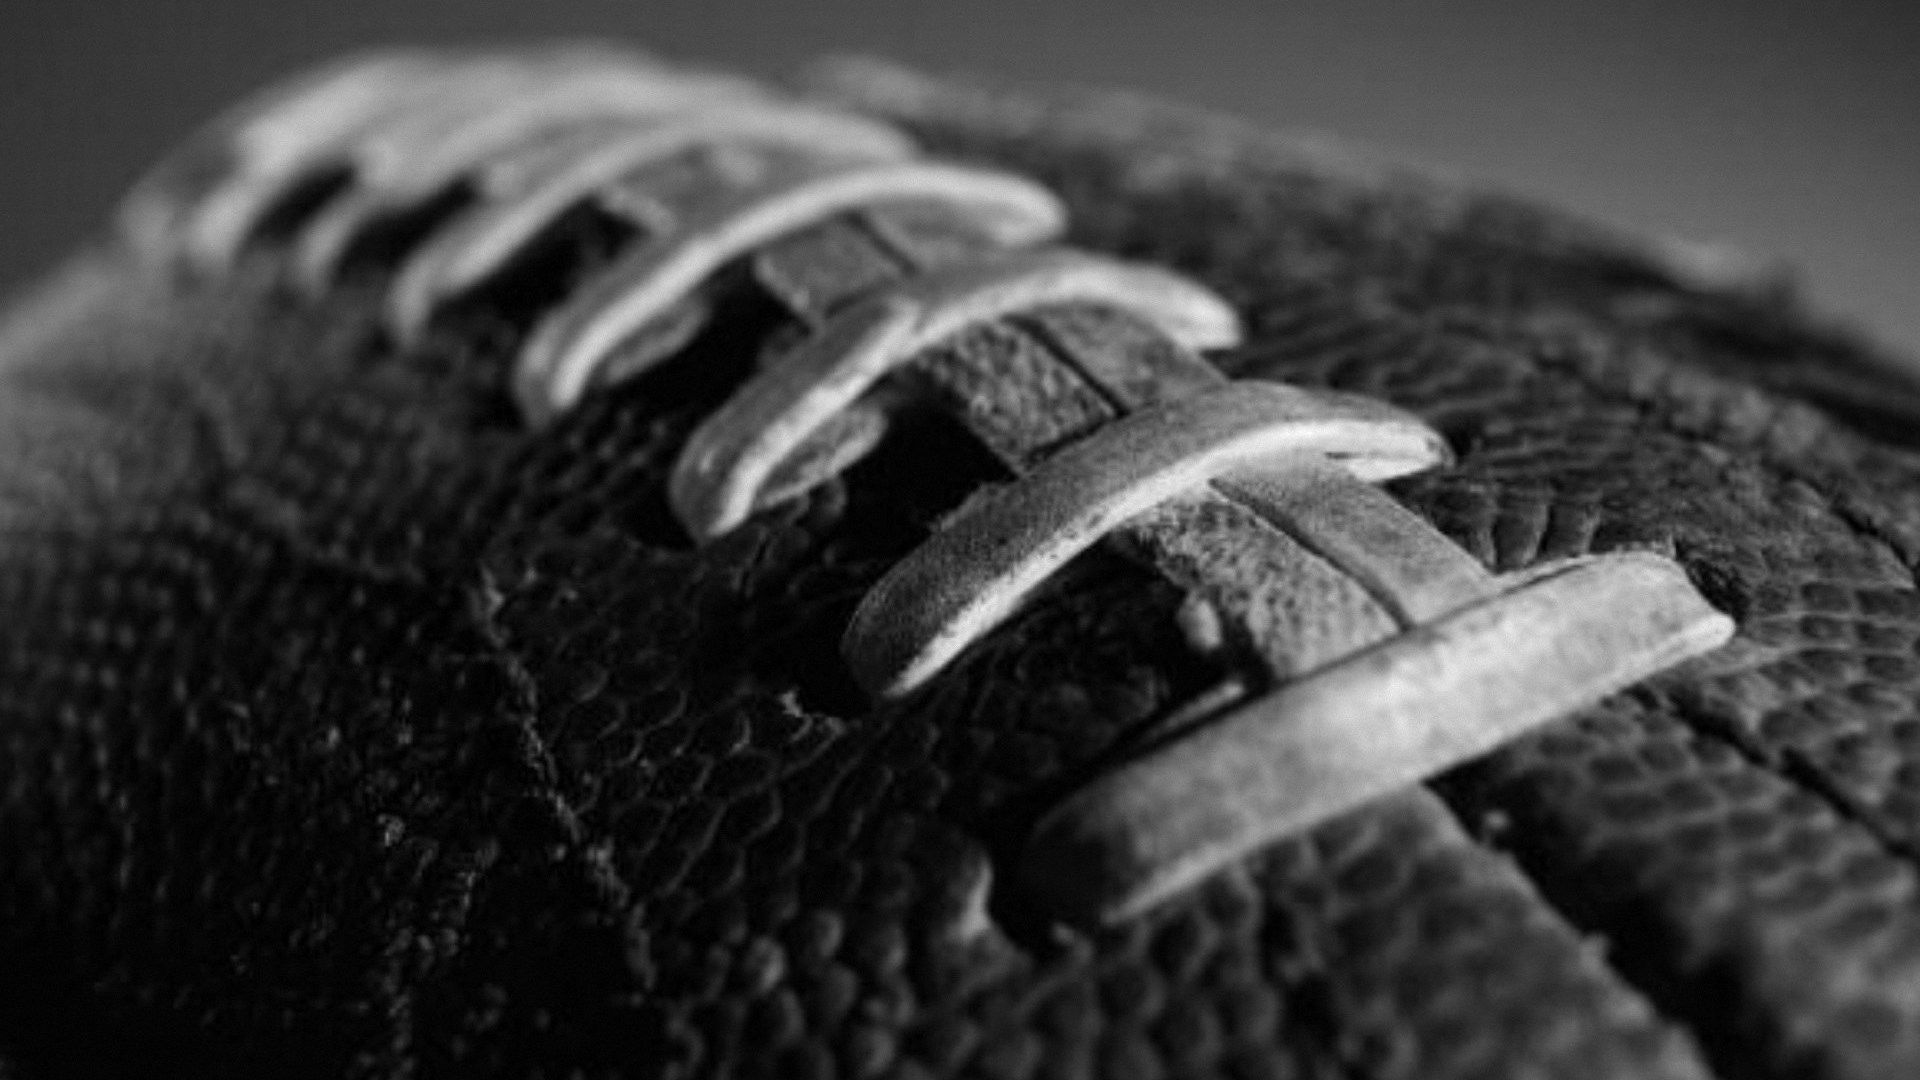 Backgrounds nfl wallpapers hd ololoshenka pinterest football backgrounds nfl wallpapers hd voltagebd Image collections